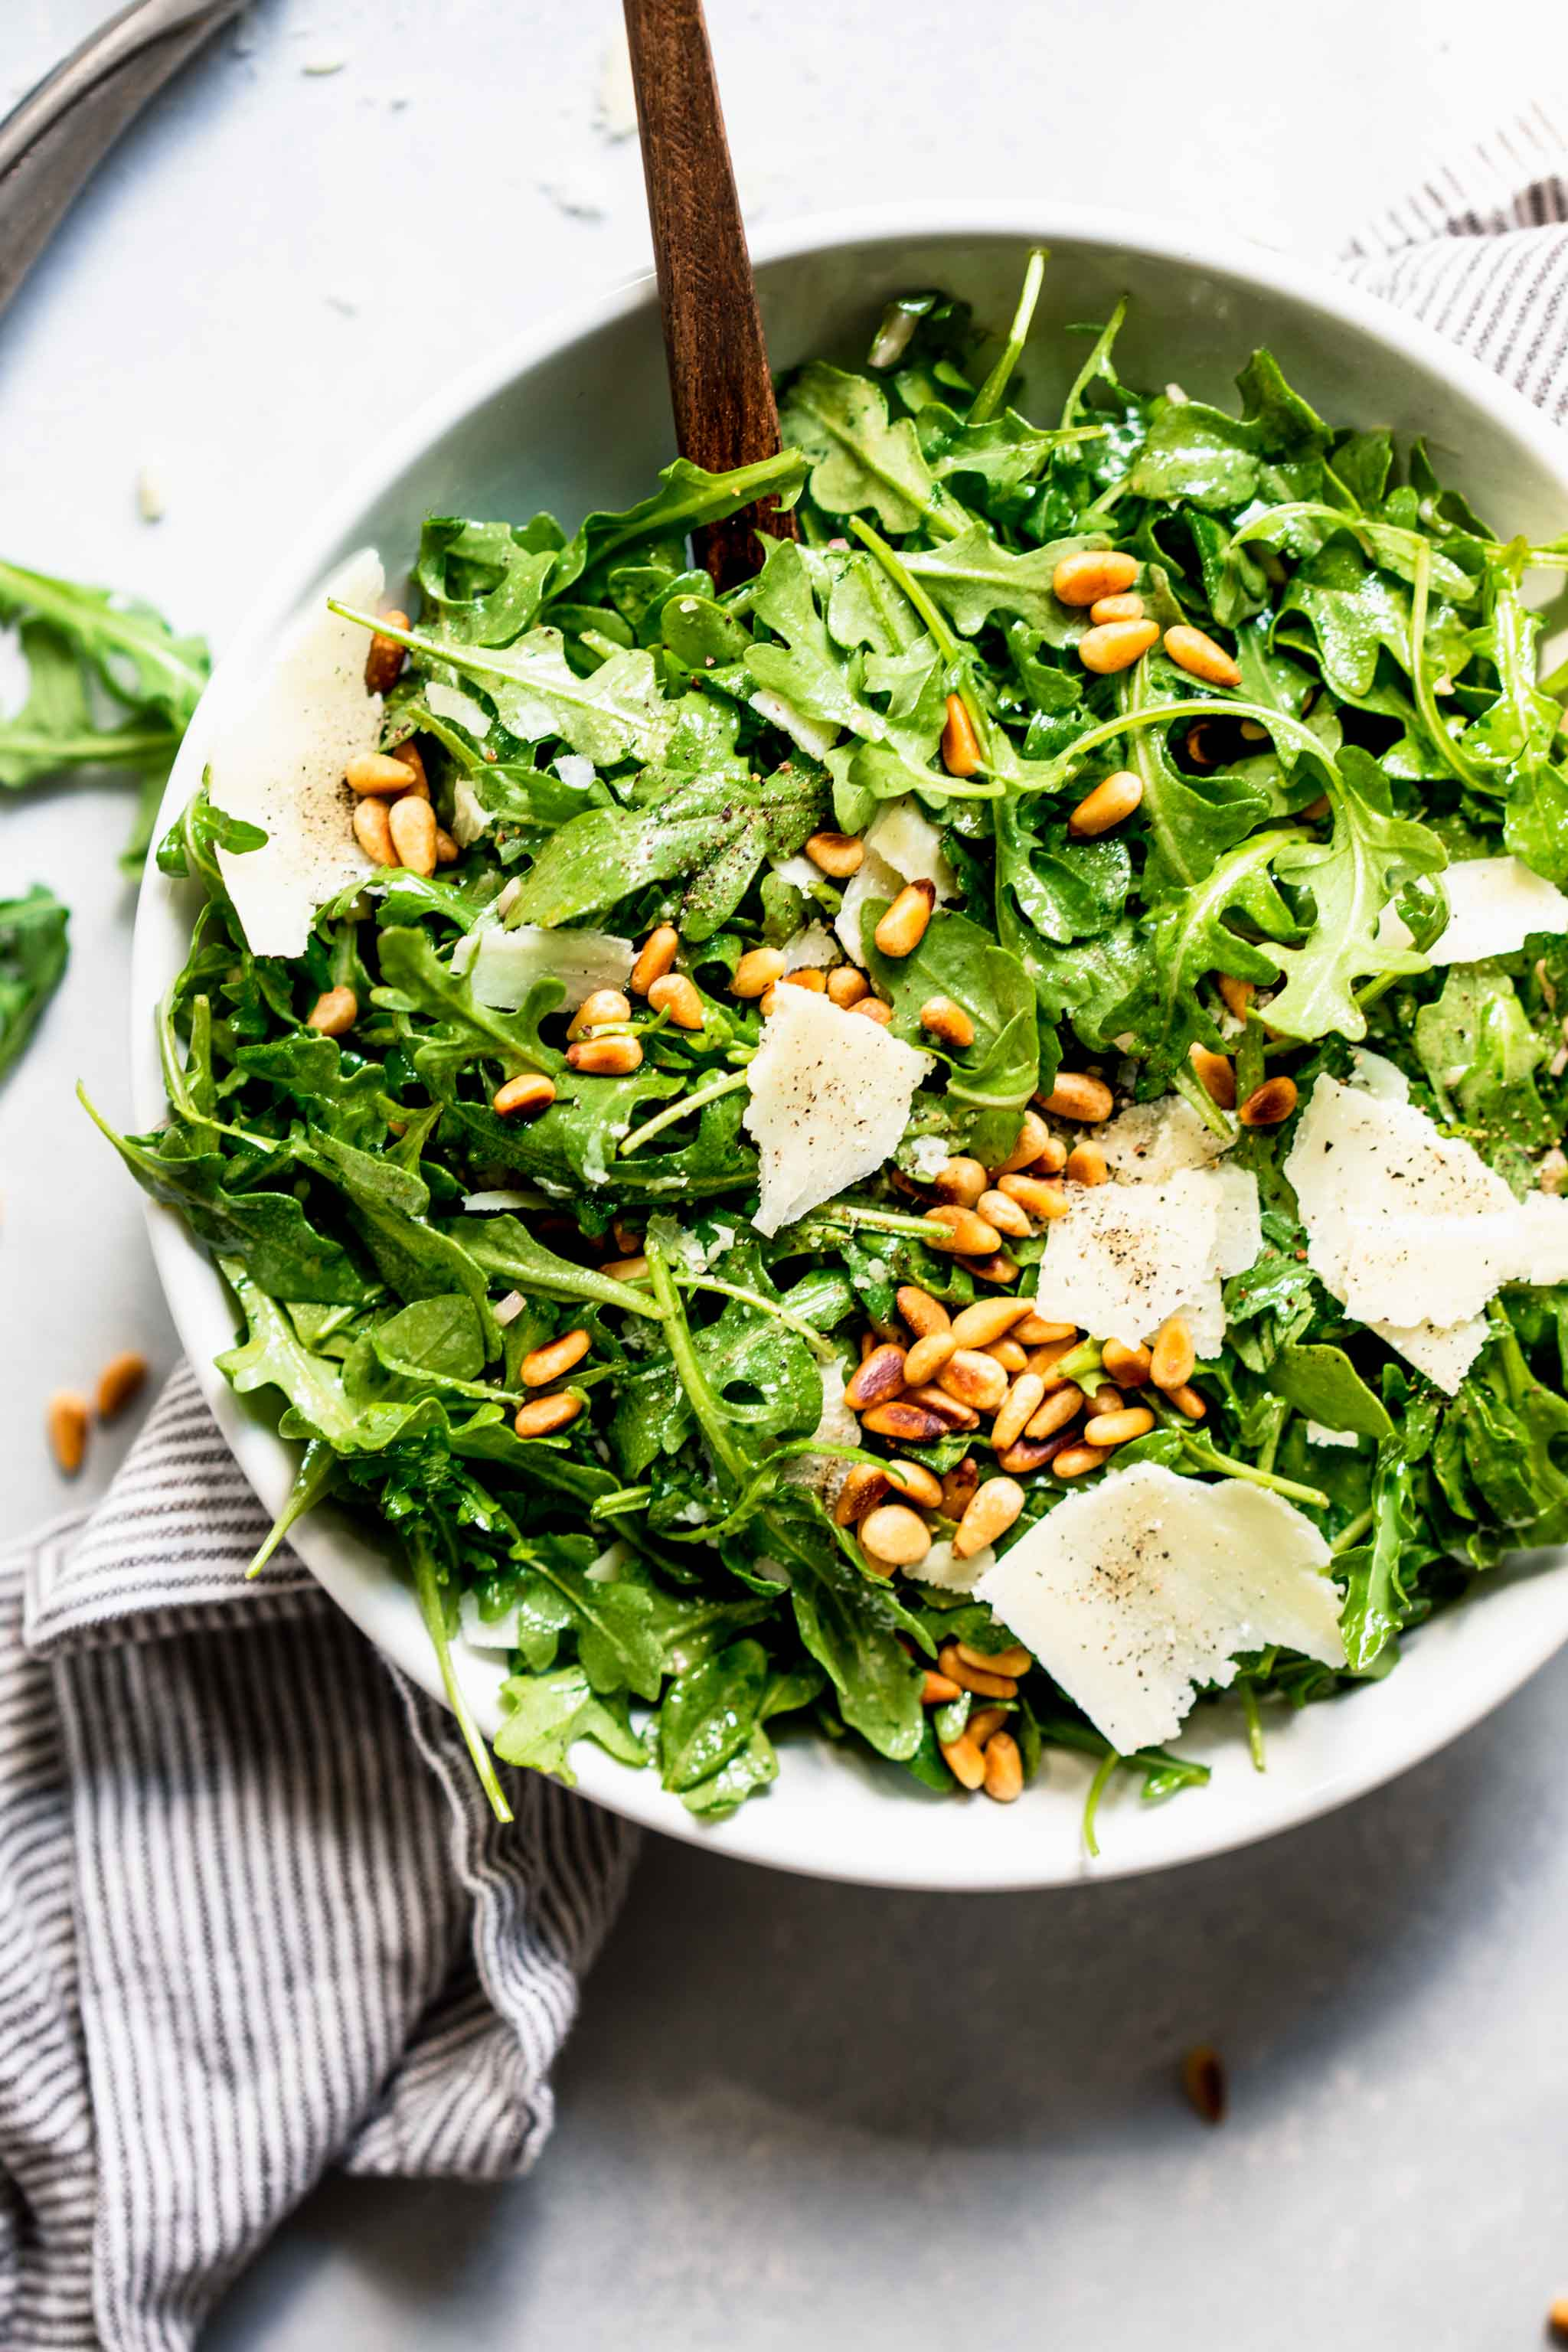 Overhead shot of arugula salad next to bowl of pine nuts and shaved parmesan.